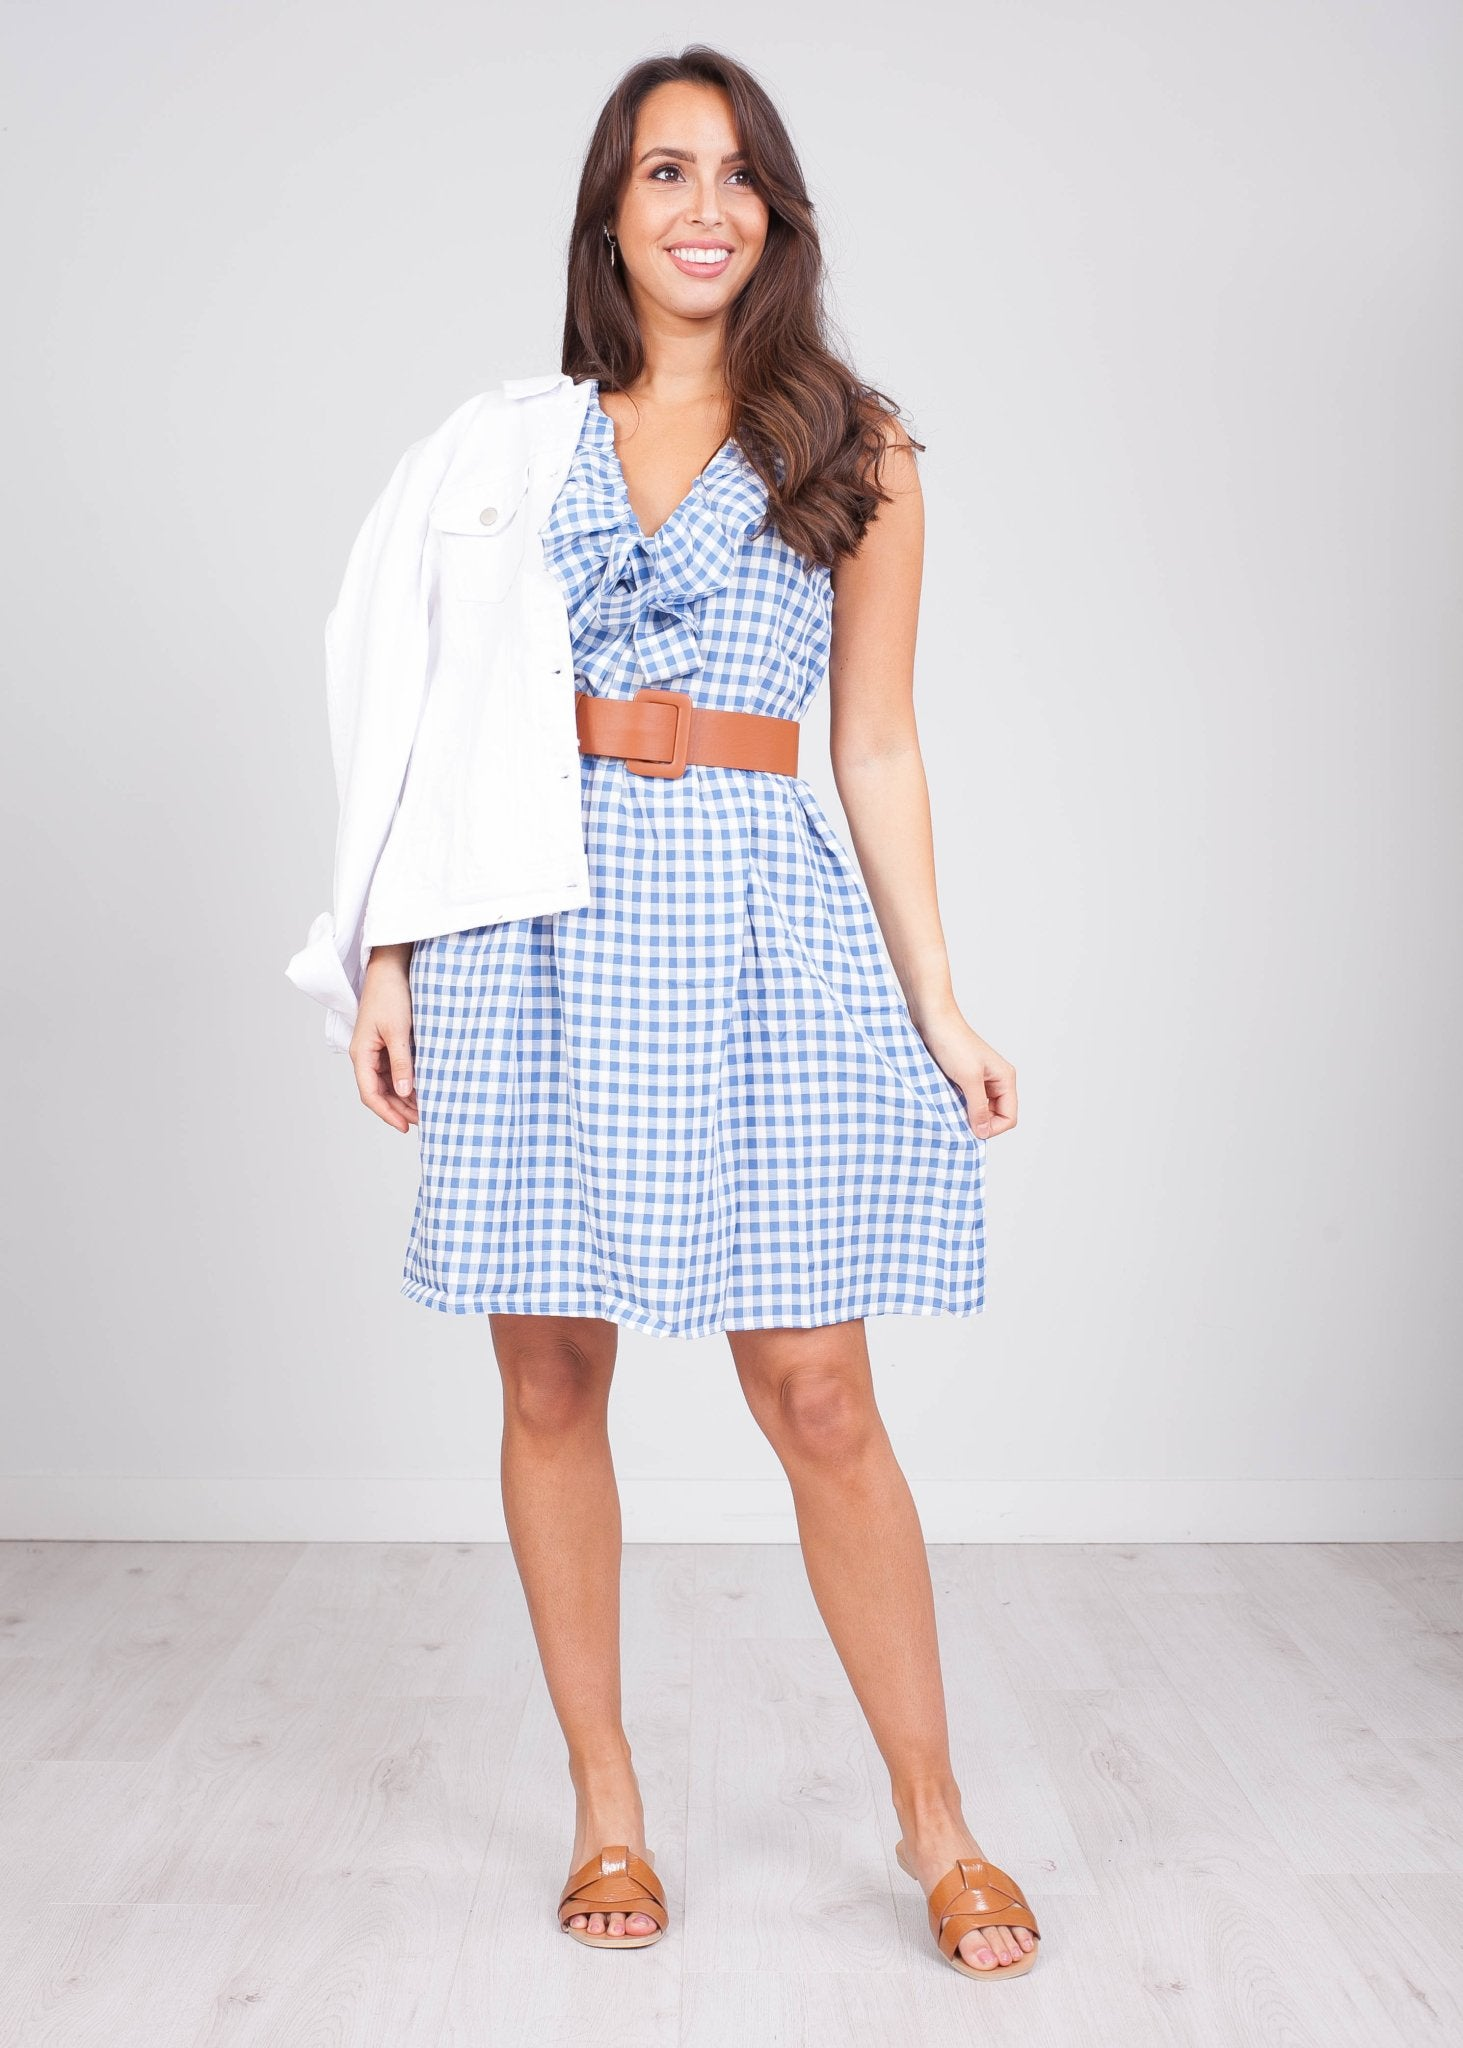 Priya Blue Gingham Bow Mini Dress - The Walk in Wardrobe